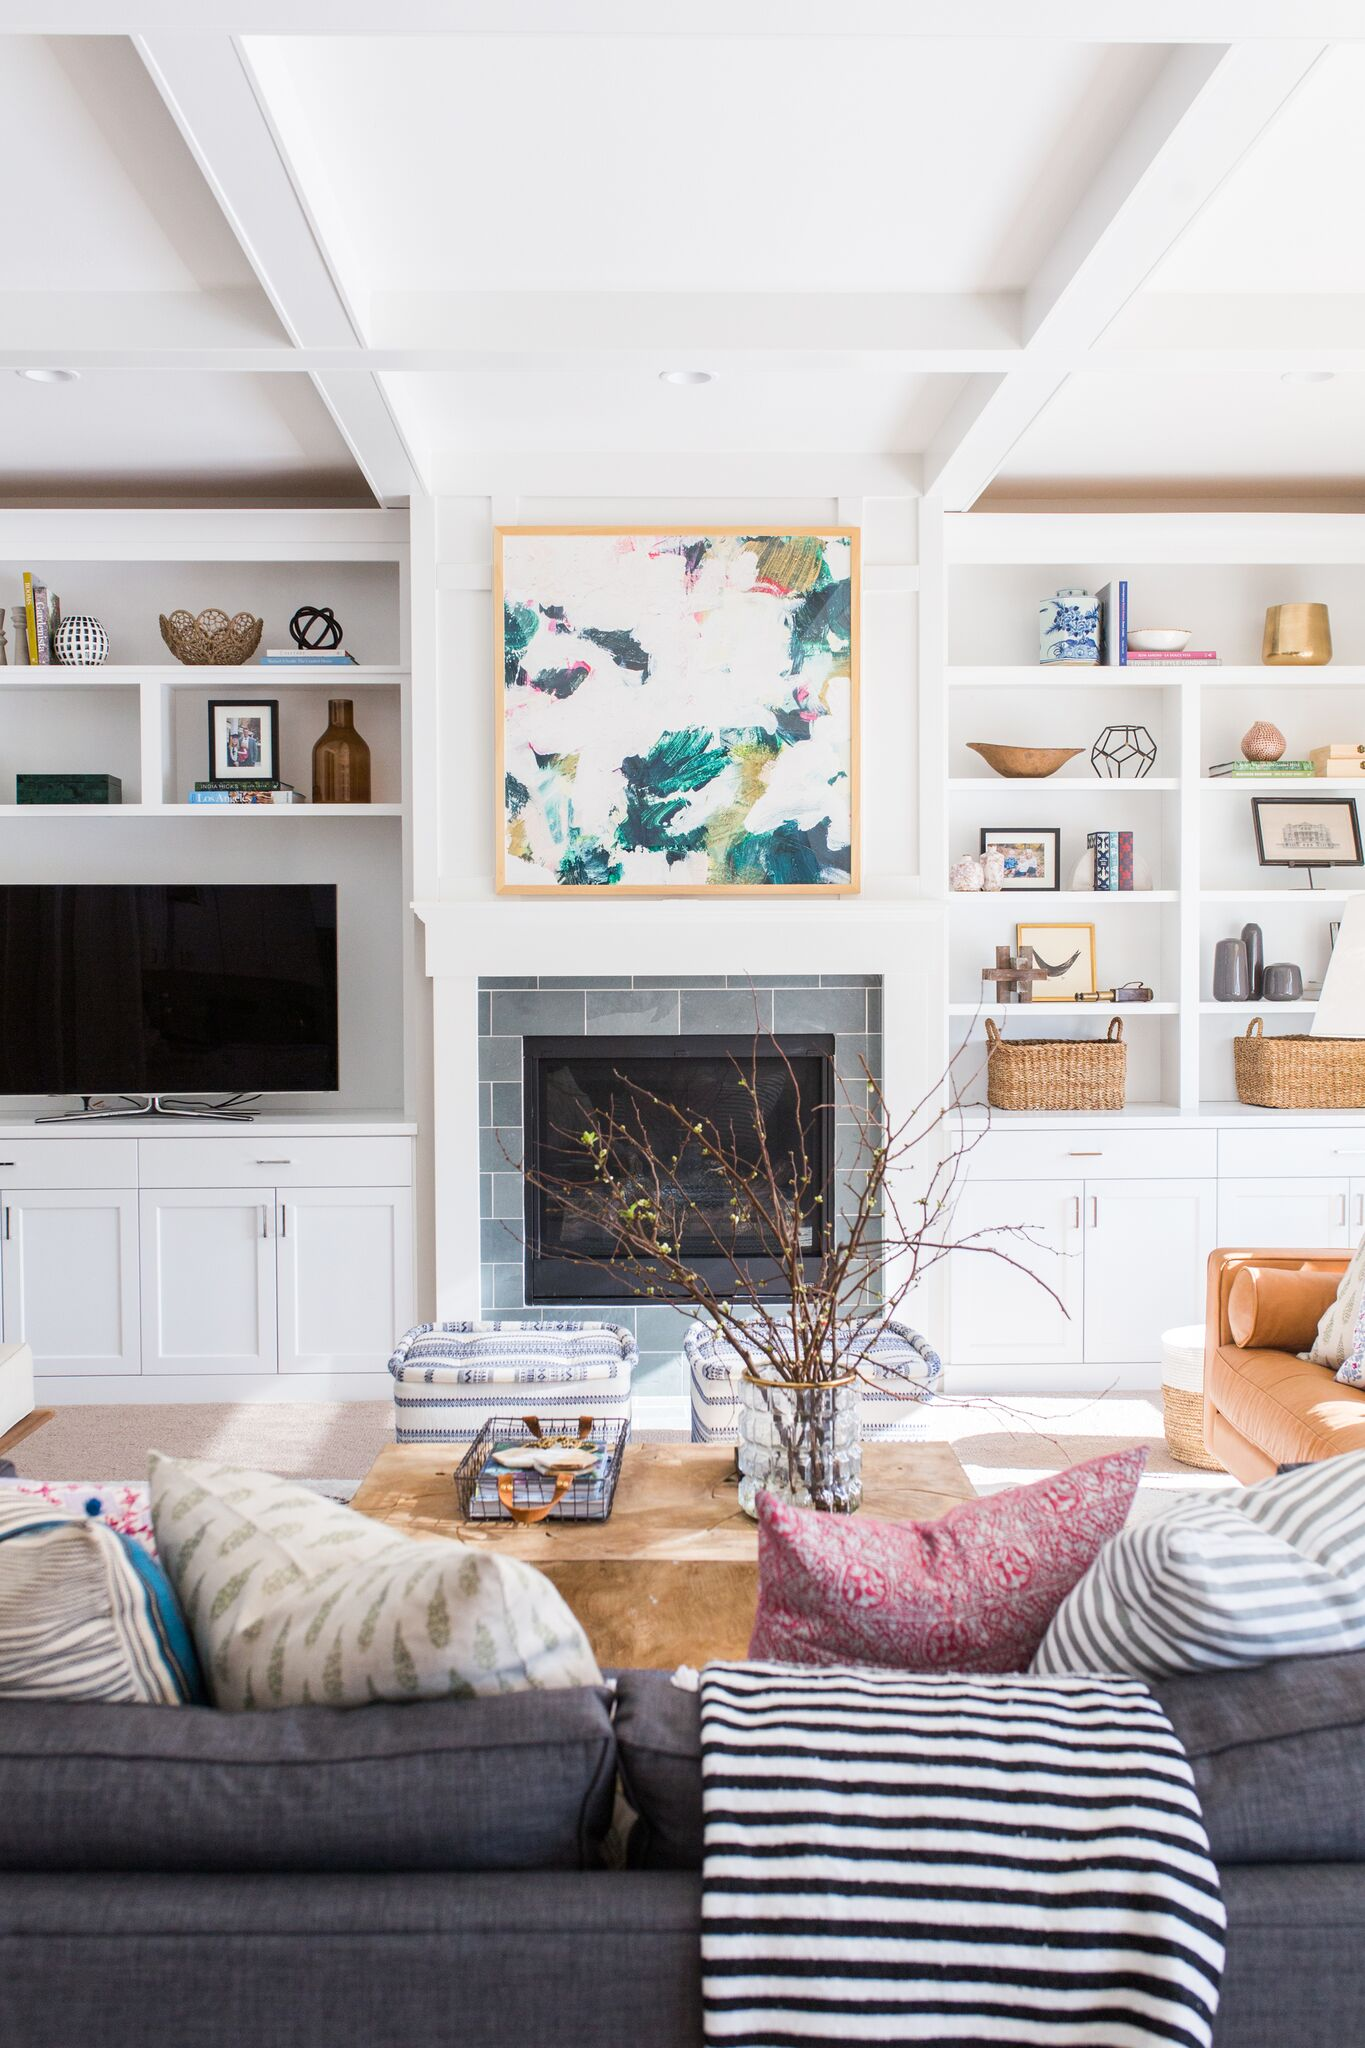 Flat screen TV and grey fireplace in living room